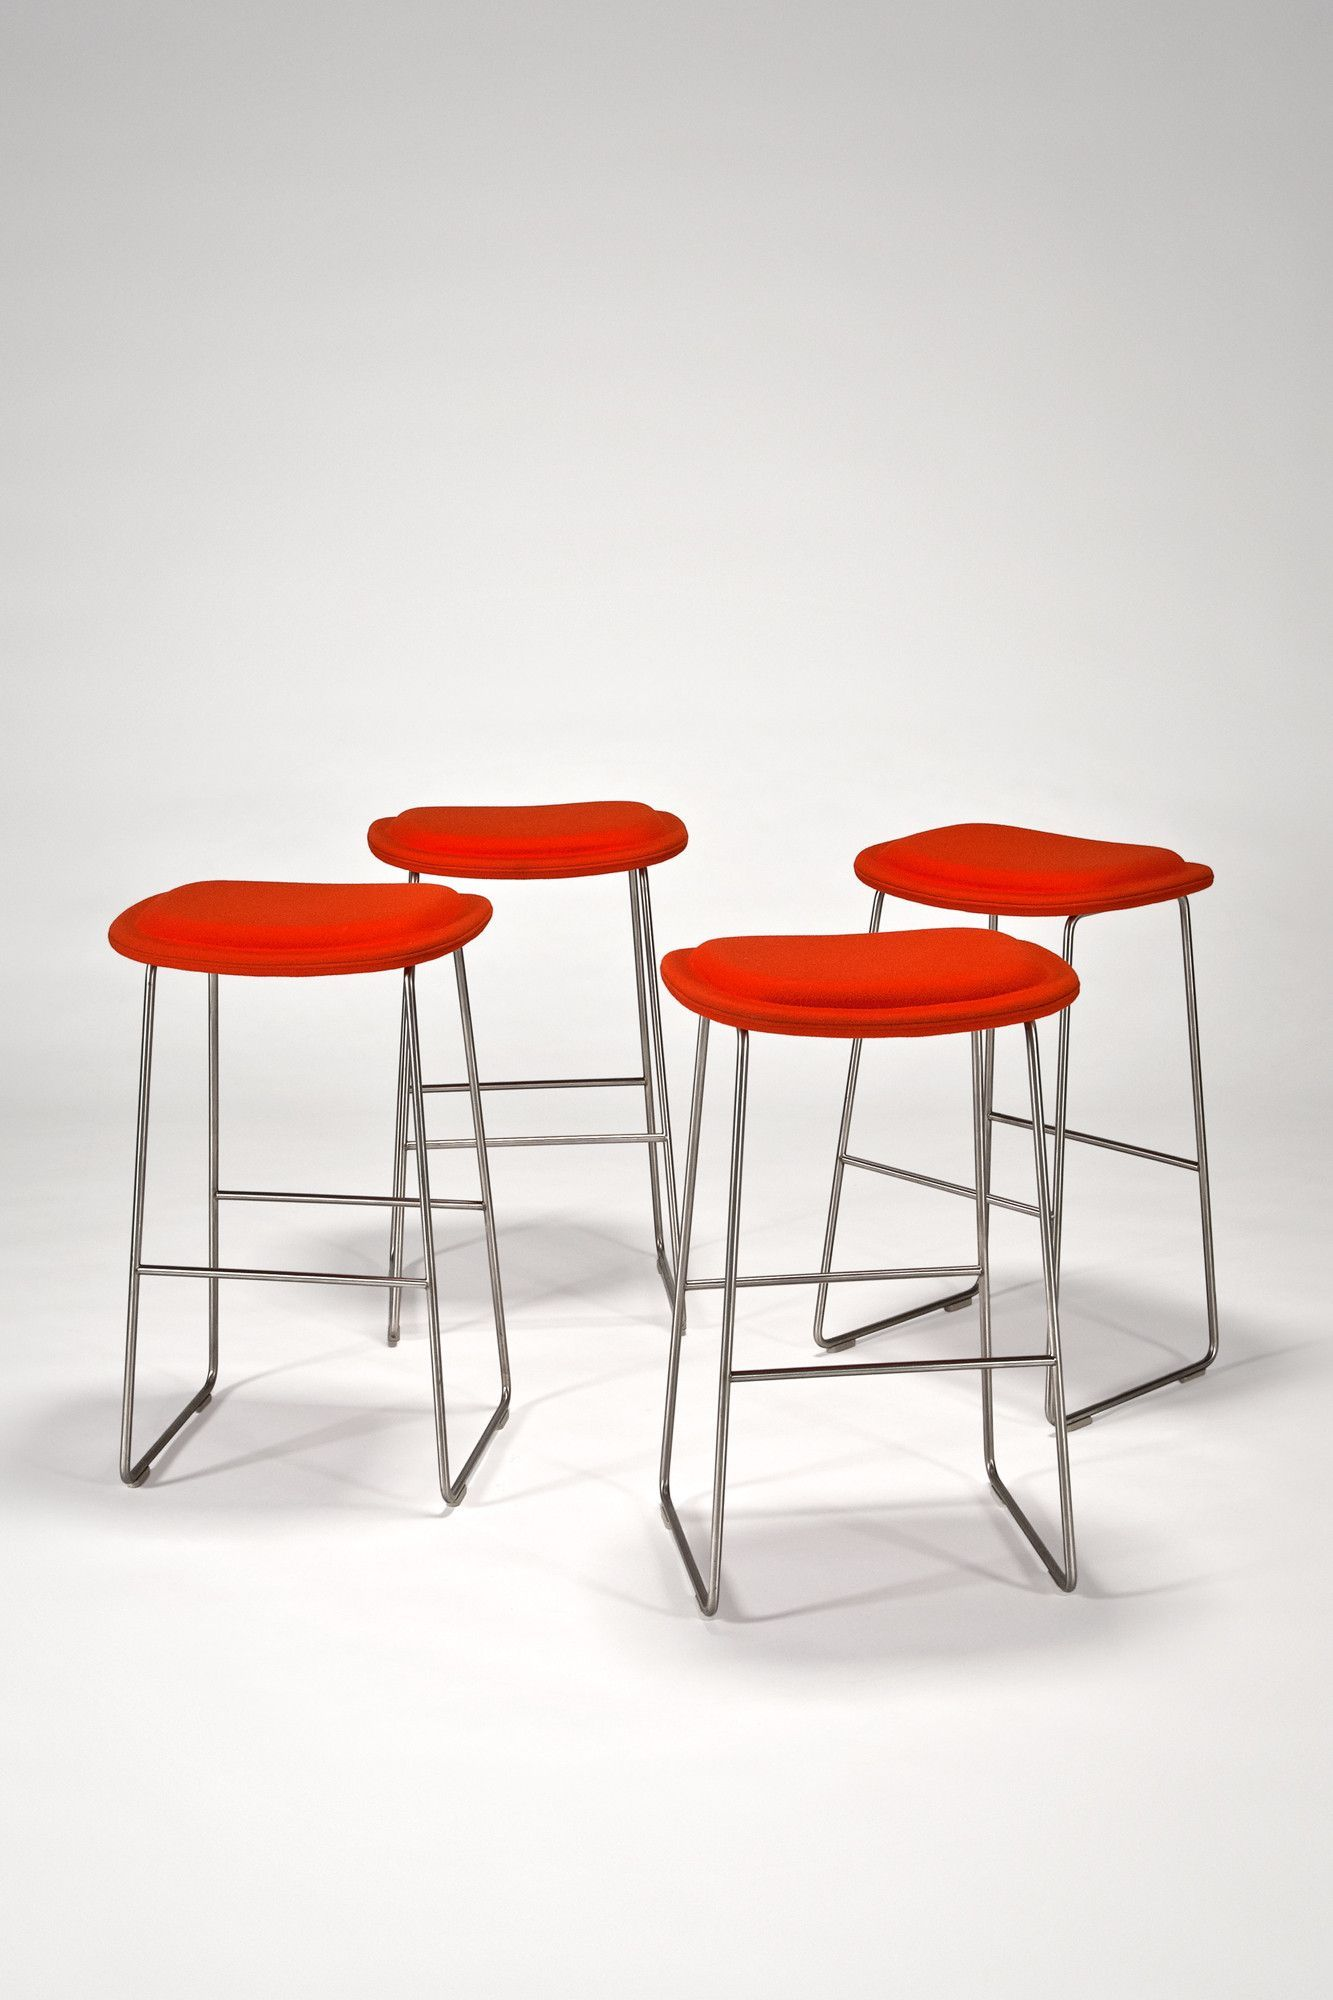 Wondrous Hi Pad Stools Set Of 4 By Jasper Morrison For Cappellini Squirreltailoven Fun Painted Chair Ideas Images Squirreltailovenorg